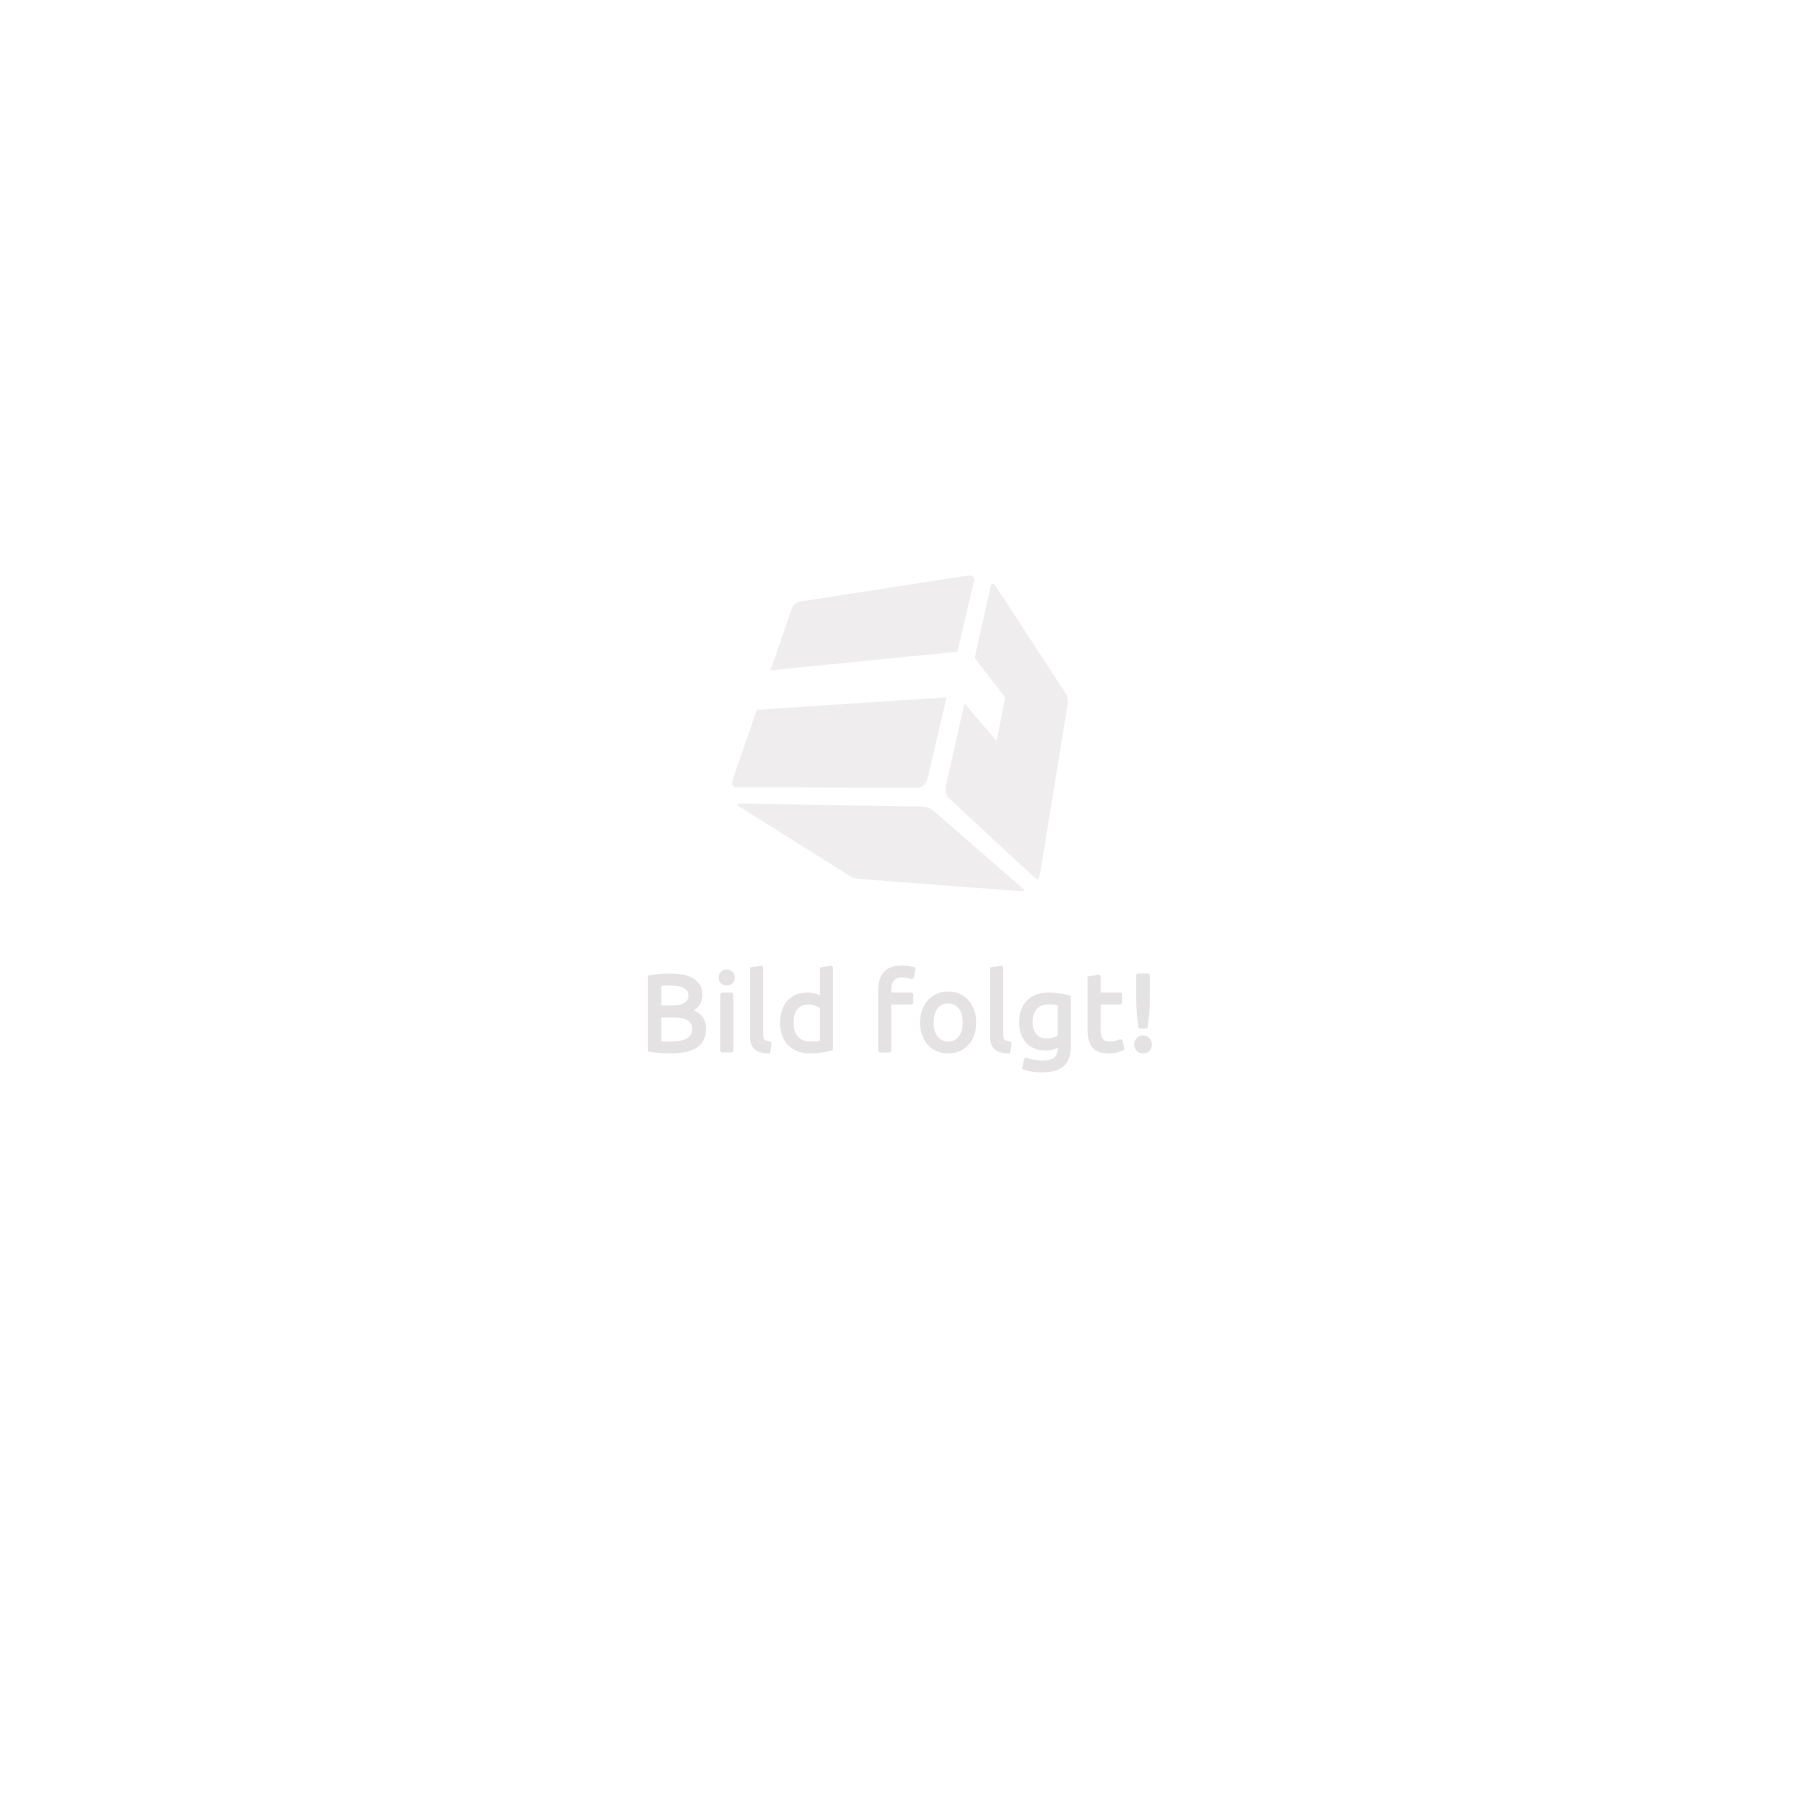 Table de massage Pliante 3 Zones, Tabouret, Rouleau + Housse blanc